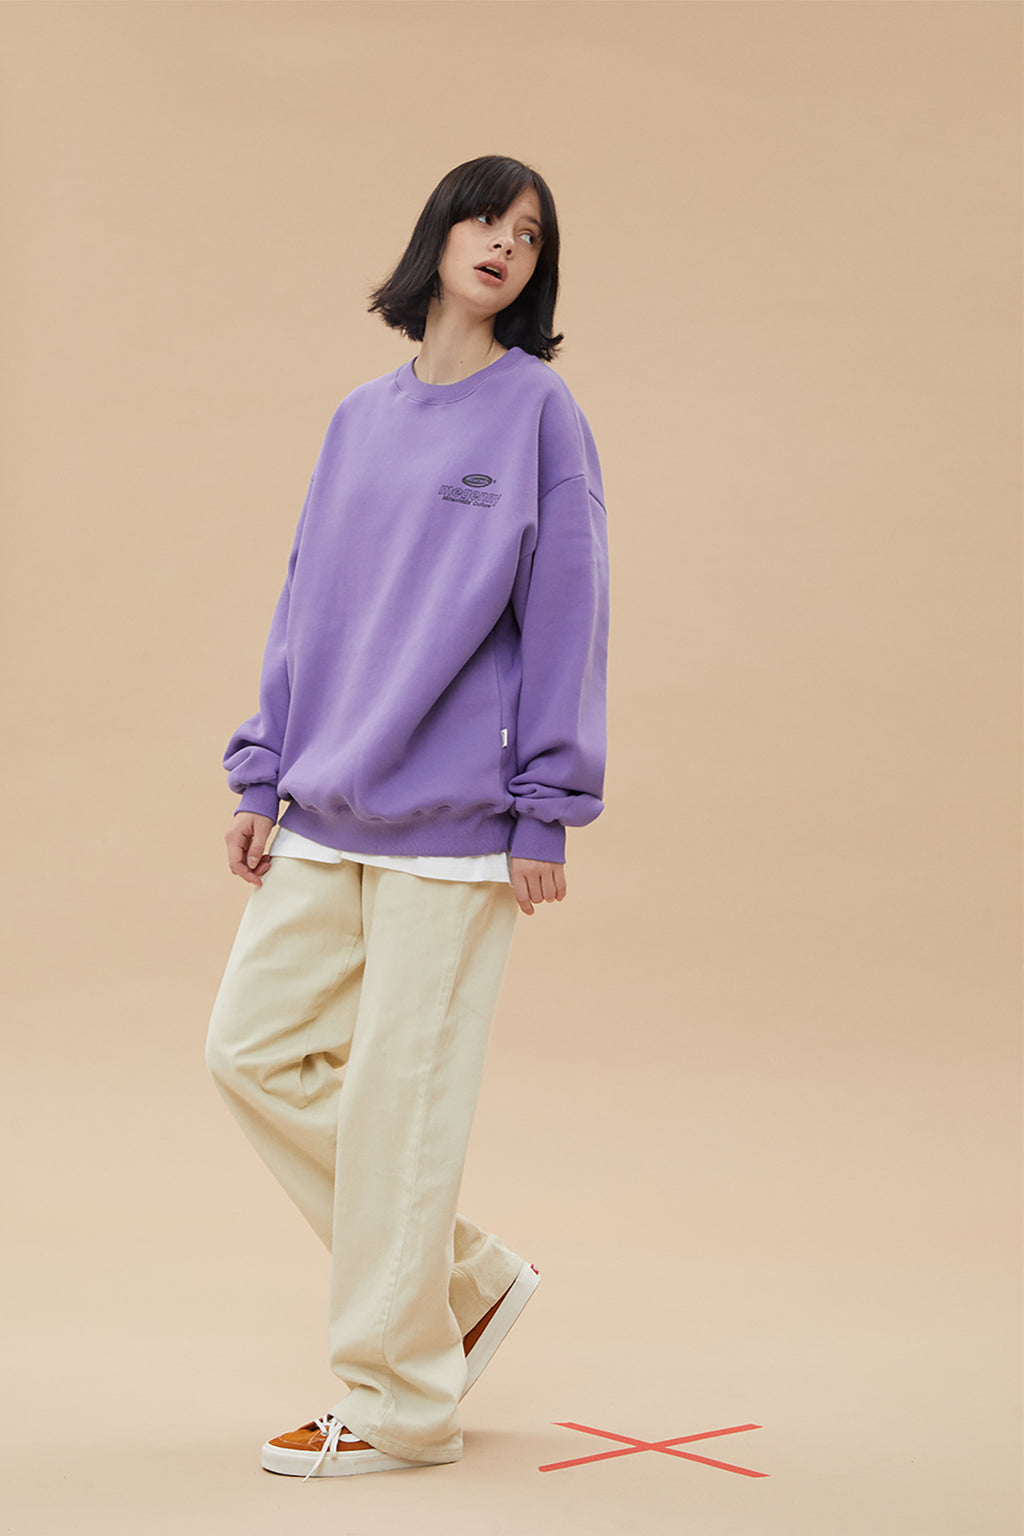 メグニースウェット / MEGENNY SWEATSHIRT v1_LIGHT PURPLE